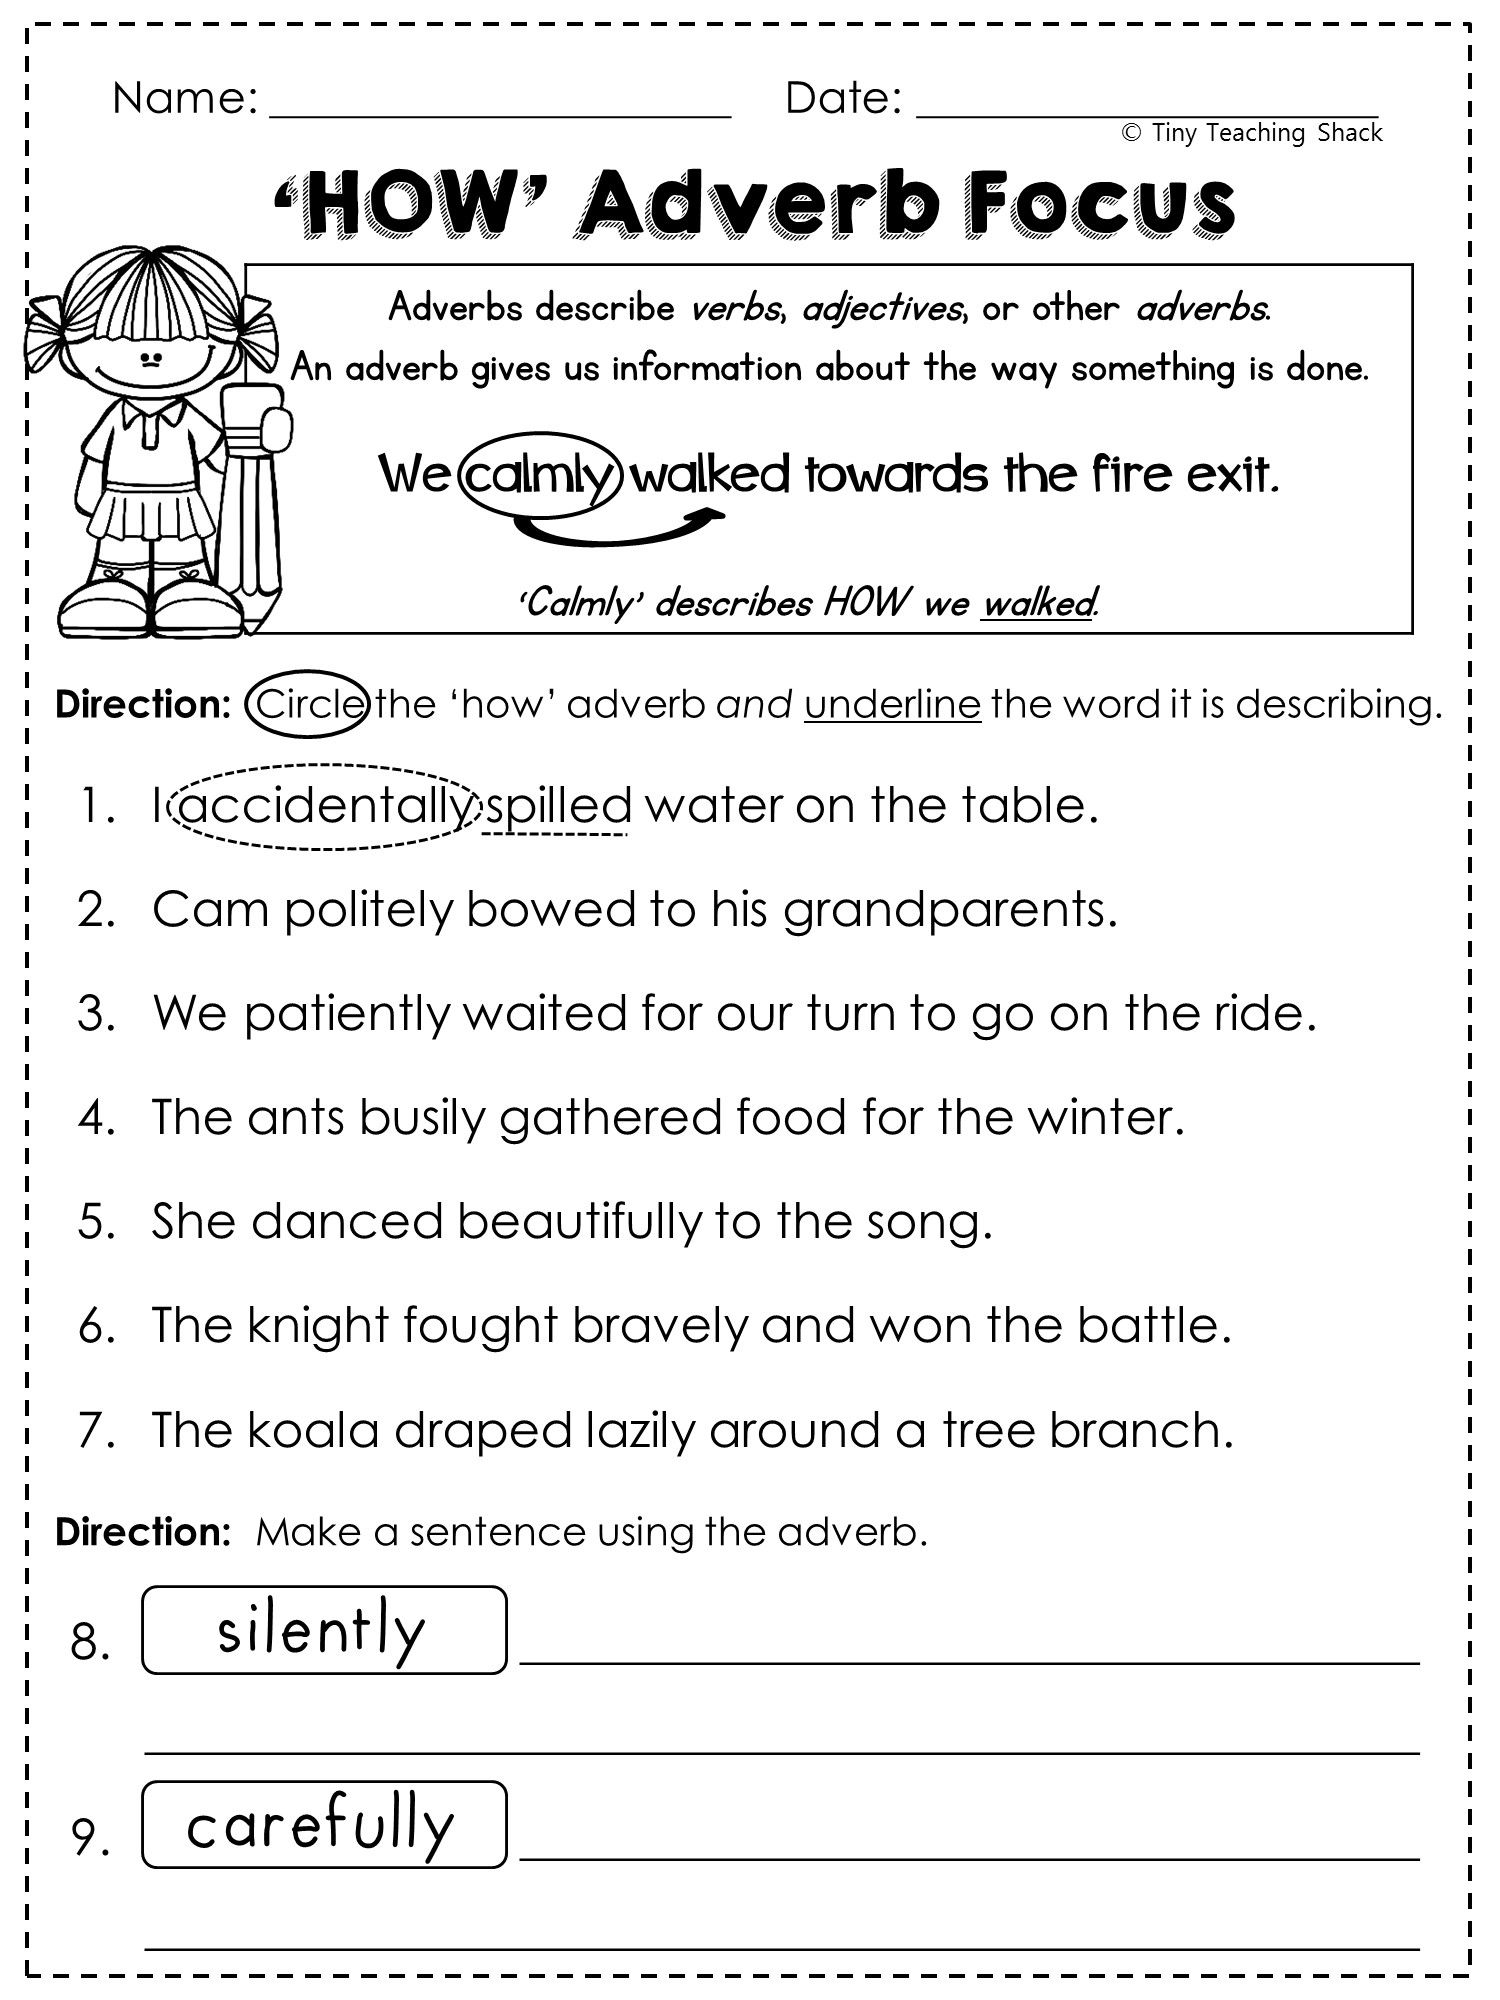 FREE adverb worksheet | Fun with Literacy- My TPT | Pinterest ...